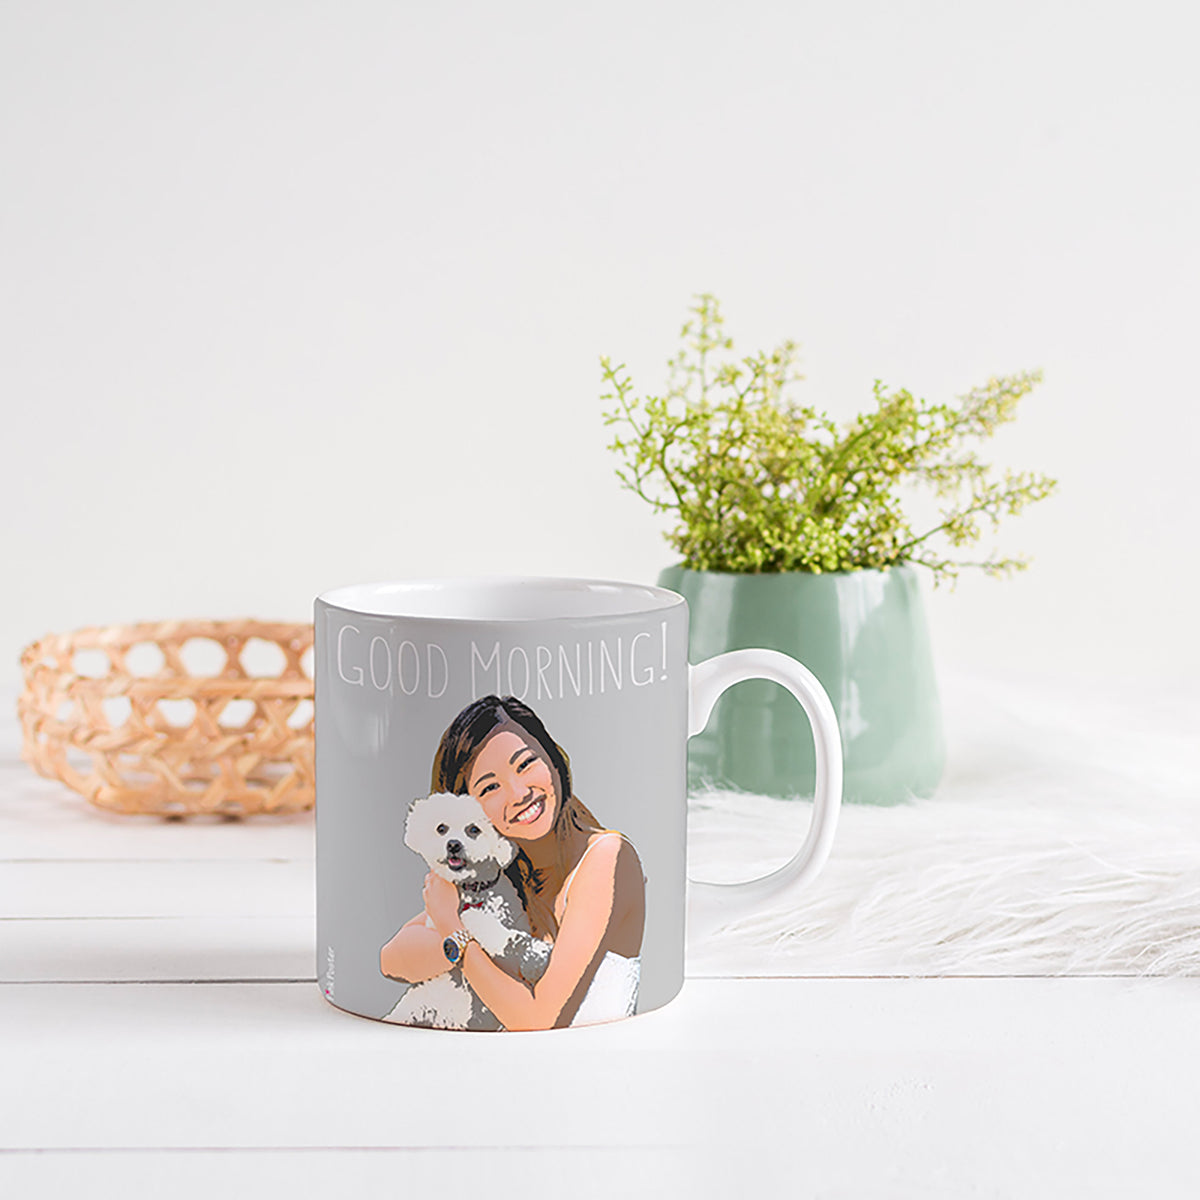 custom art of a lady with her dog on a tea cup